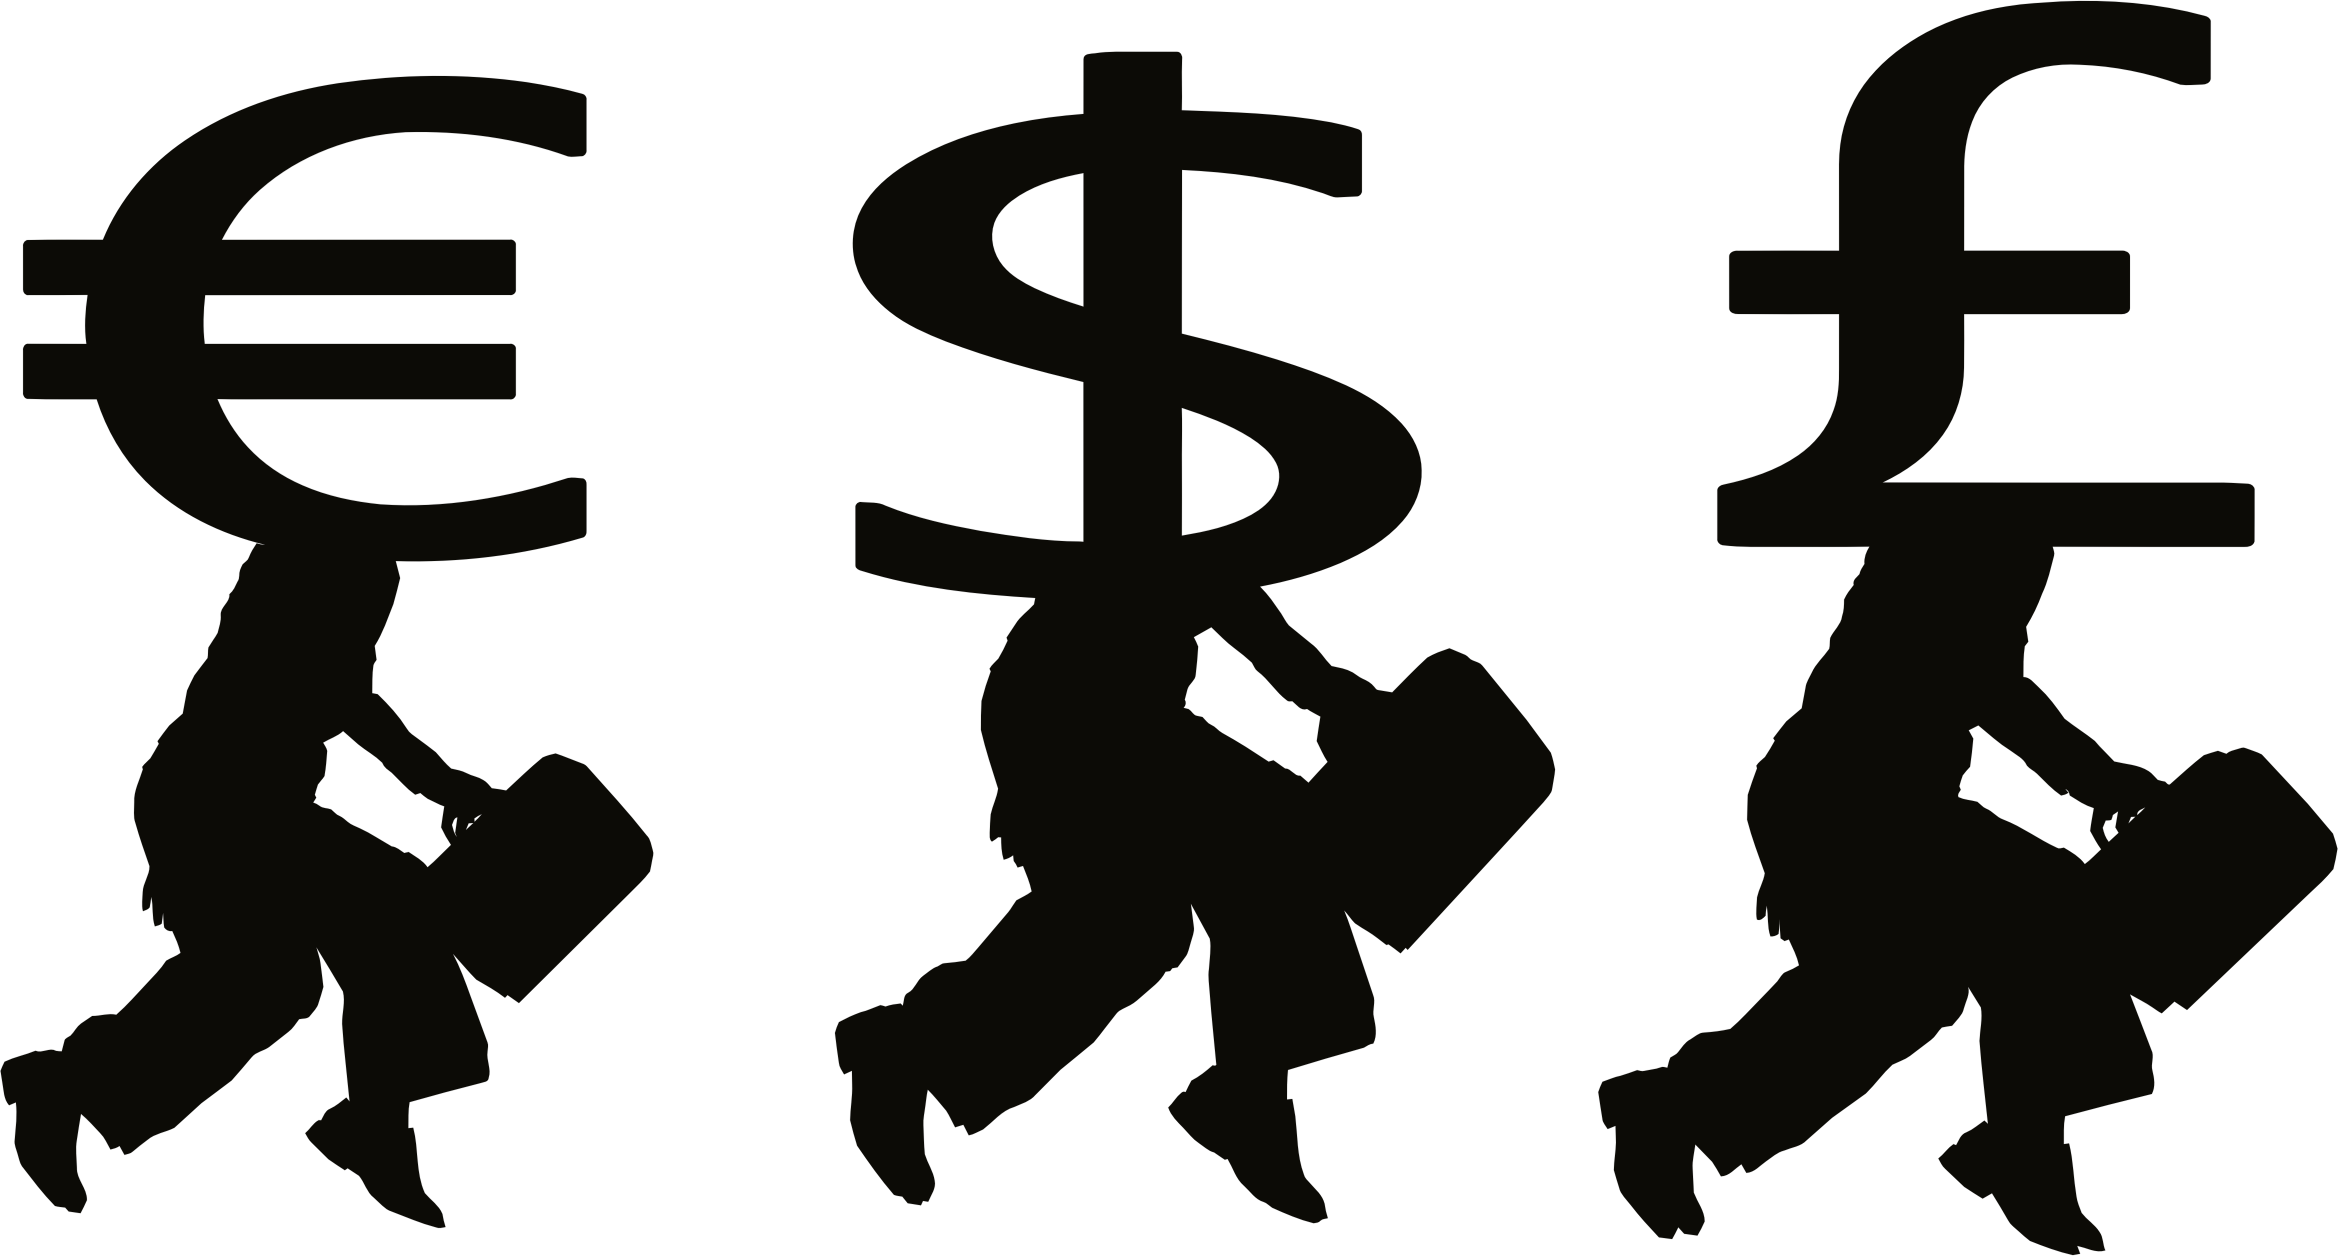 Clipart money silhouette. People big image png